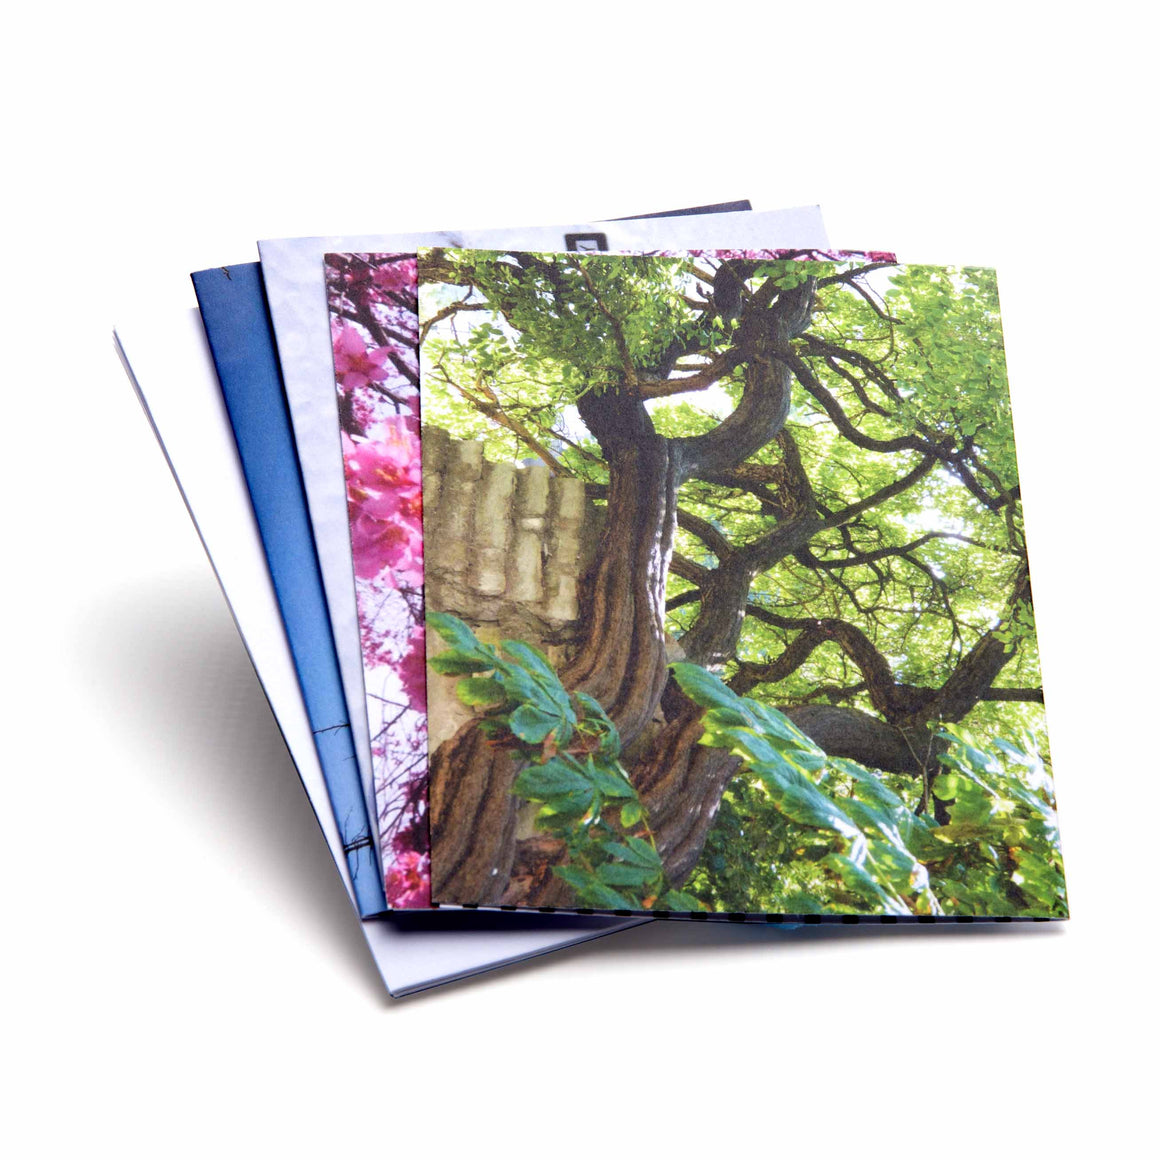 Greeting Cards with Envelopes product image - included with Dr. Don's Care Packages Sympathy Condolence Care Package.